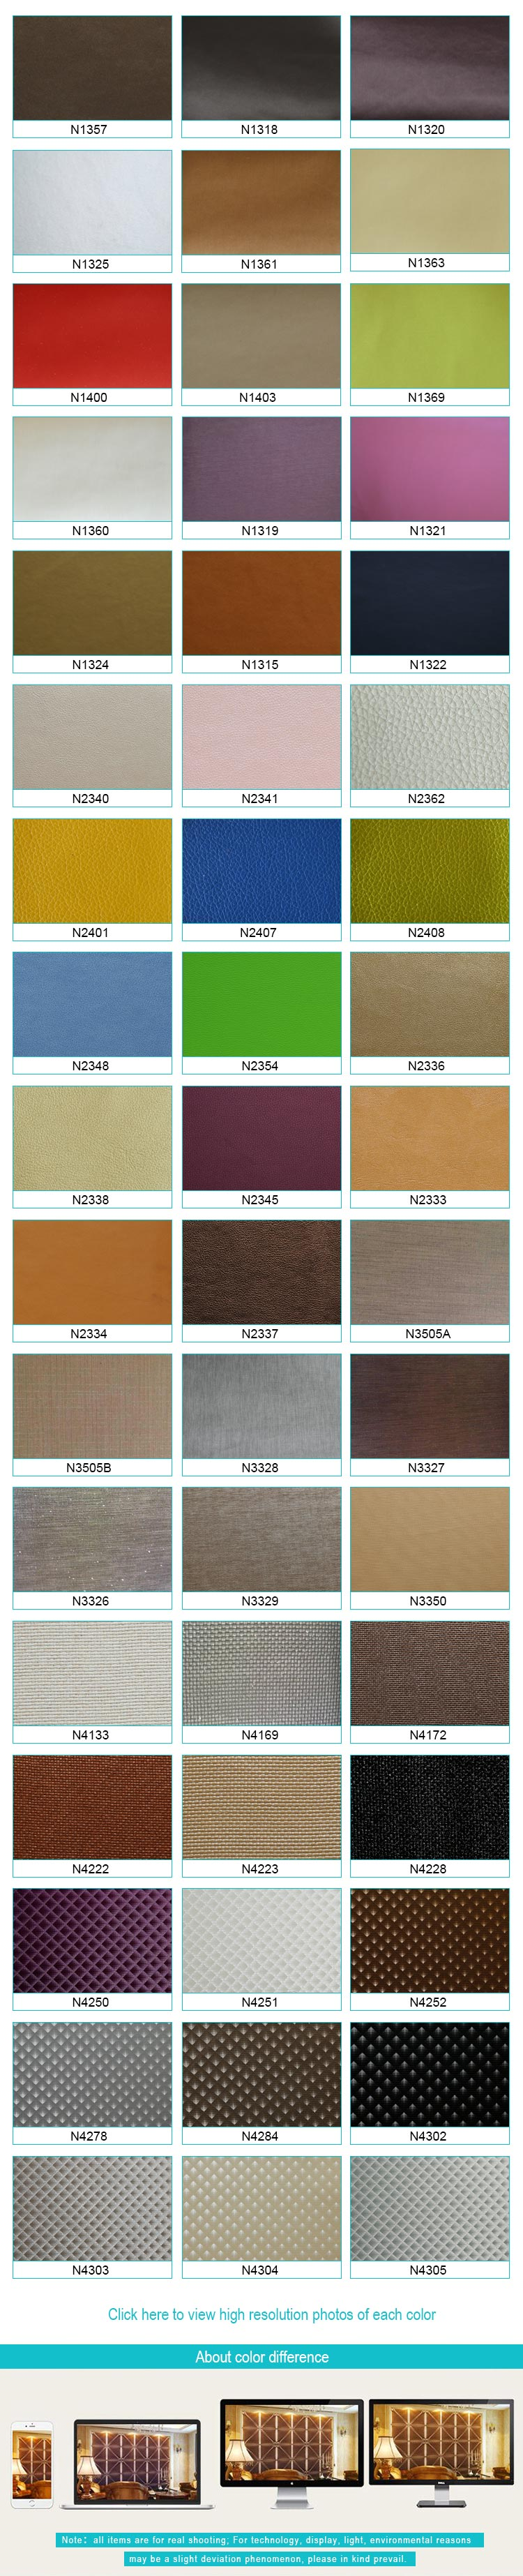 faux leather color option